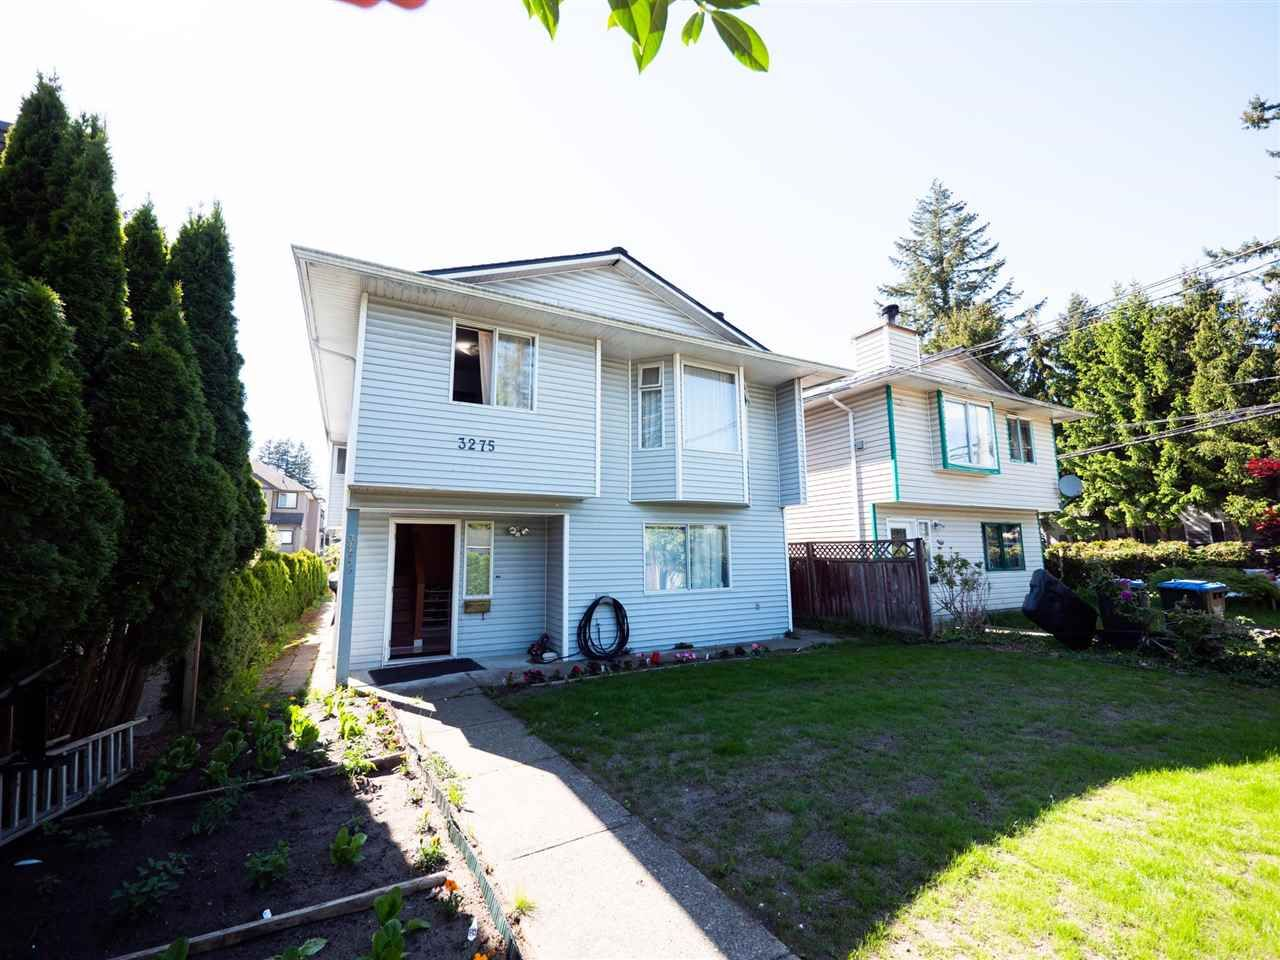 Main Photo: 3275 VINCENT Street in Port Coquitlam: Glenwood PQ House for sale : MLS®# R2591151